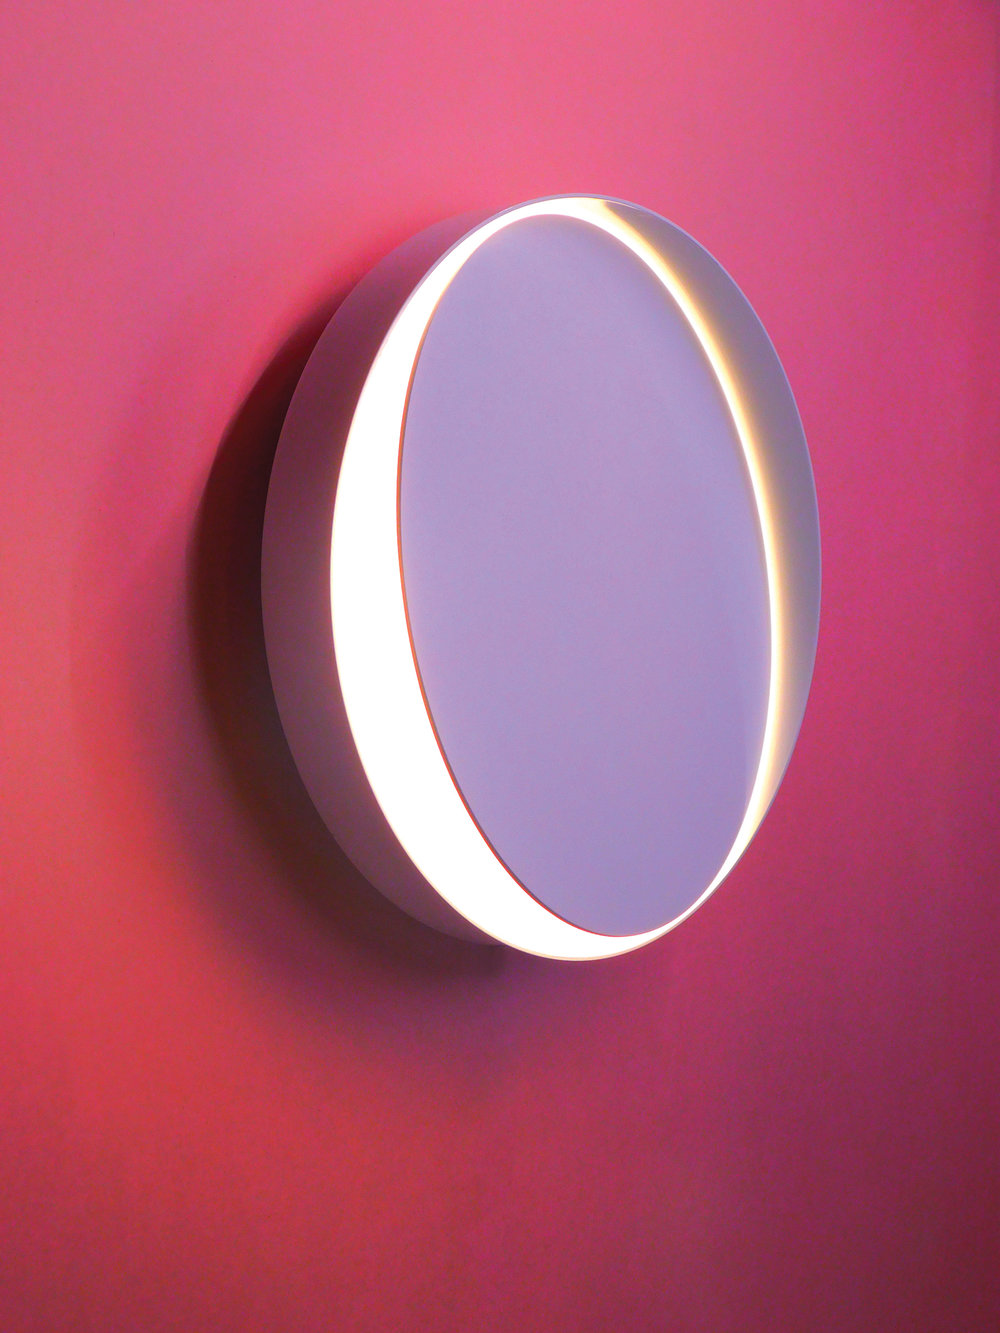 The Horizon wall sconce. by Anony - a minimalist disk with an unbroken ring